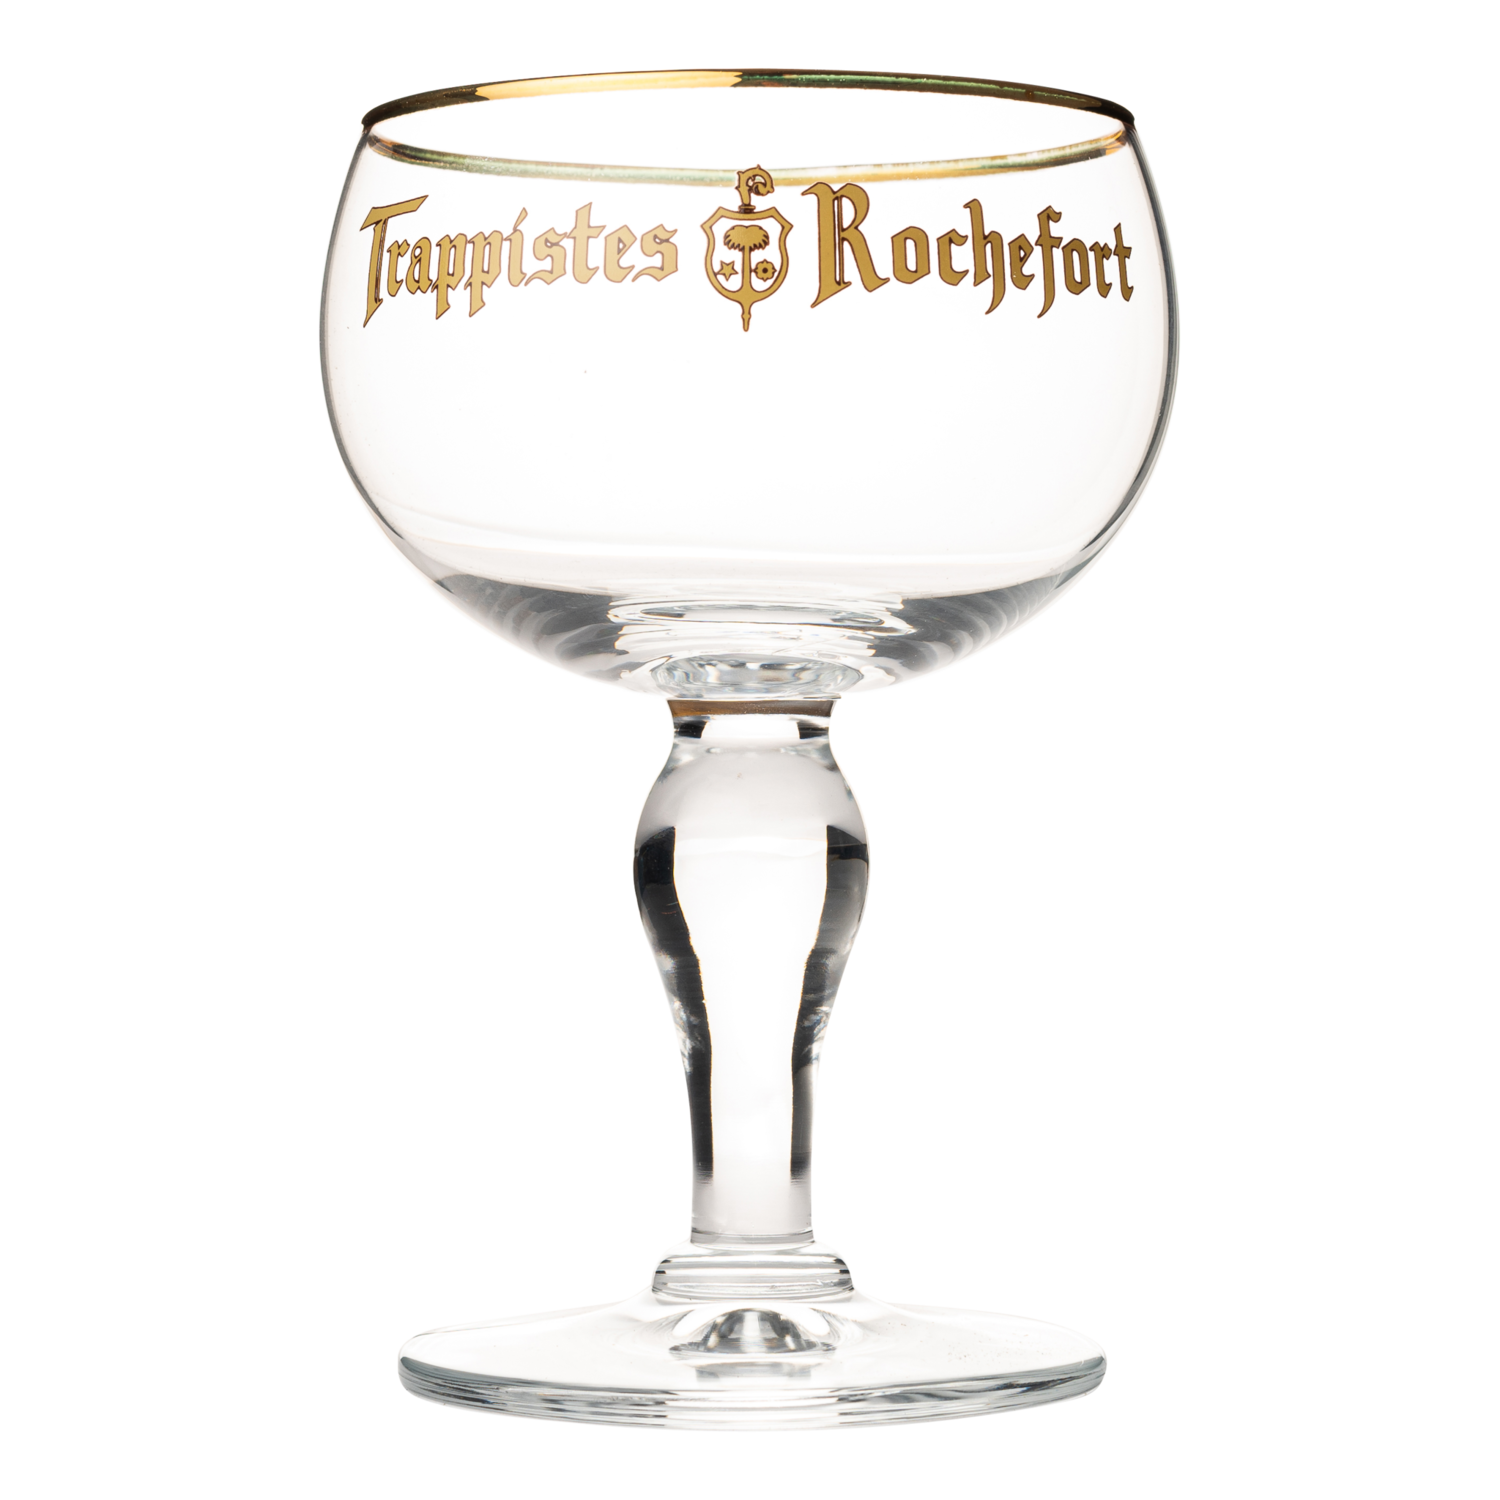 Trappistes Rochefort 33cl Glass